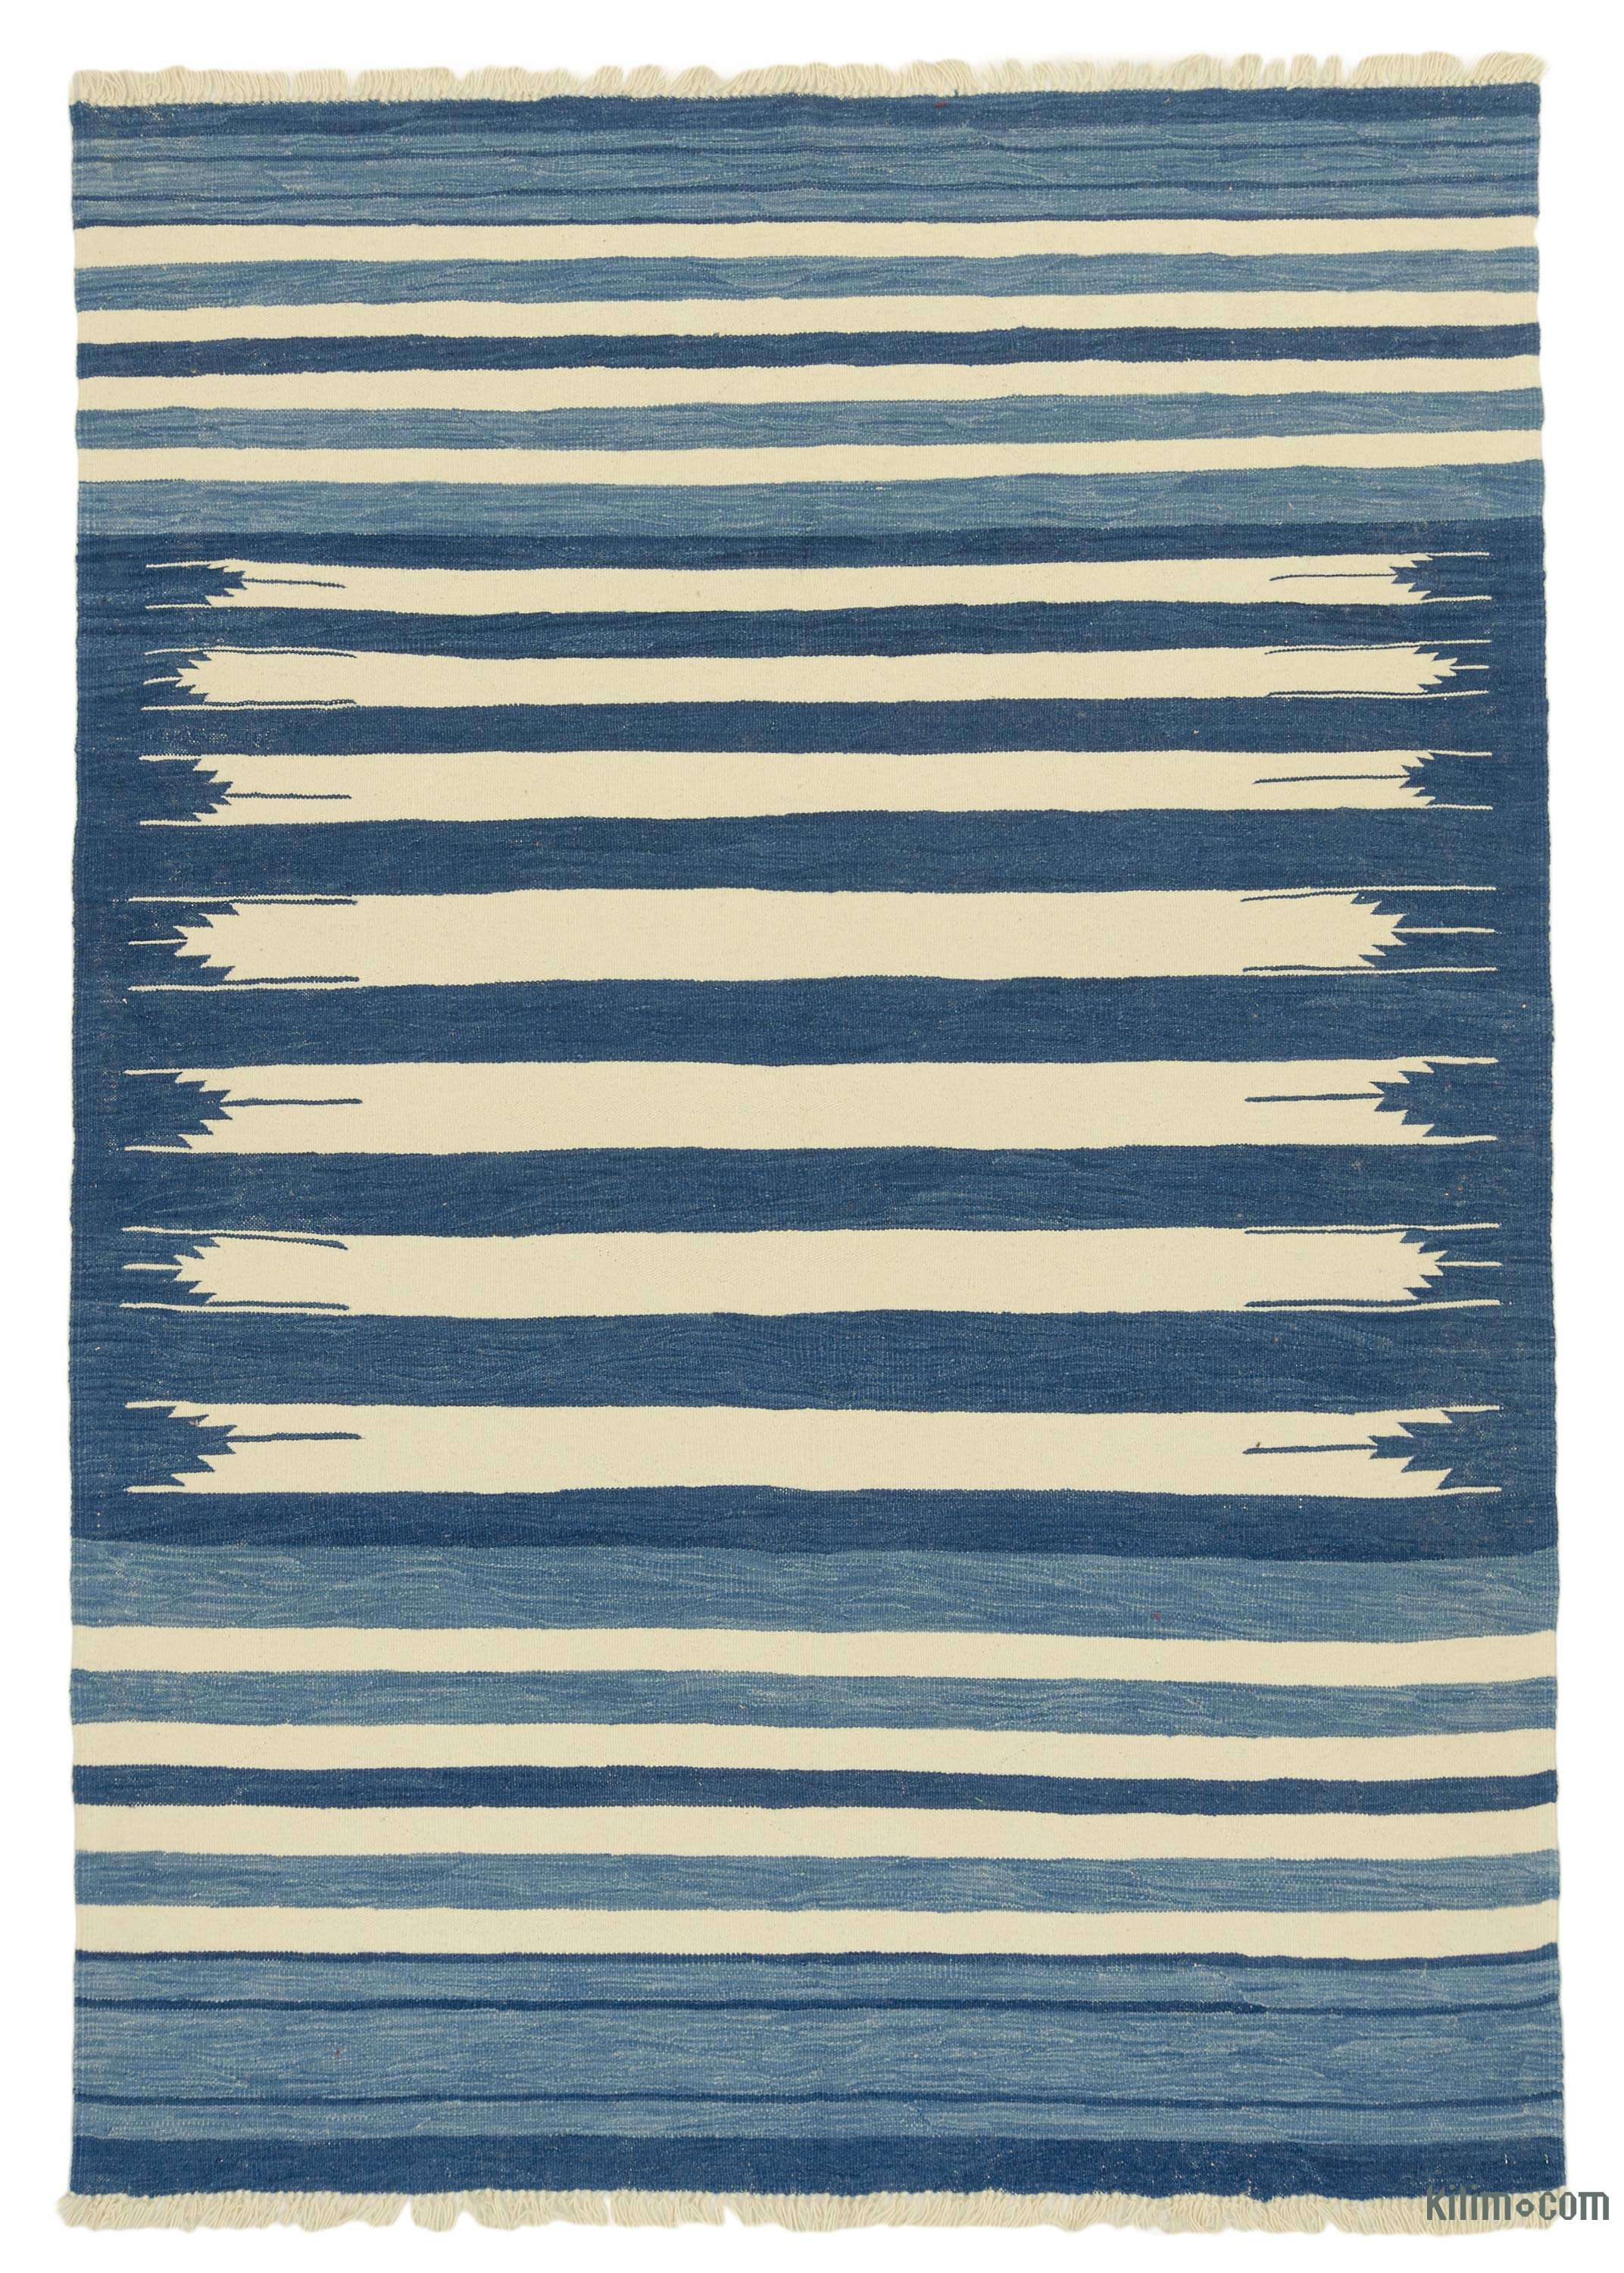 K0043334 Blue Beige New Handwoven Turkish Kilim Rug 6 X 8 6 72 In X 102 In The Source For Hand Knotted Vintage Rugs Hand Woven Kilim Rugs Wool Turkish Rugs Overdyed Persian Rugs